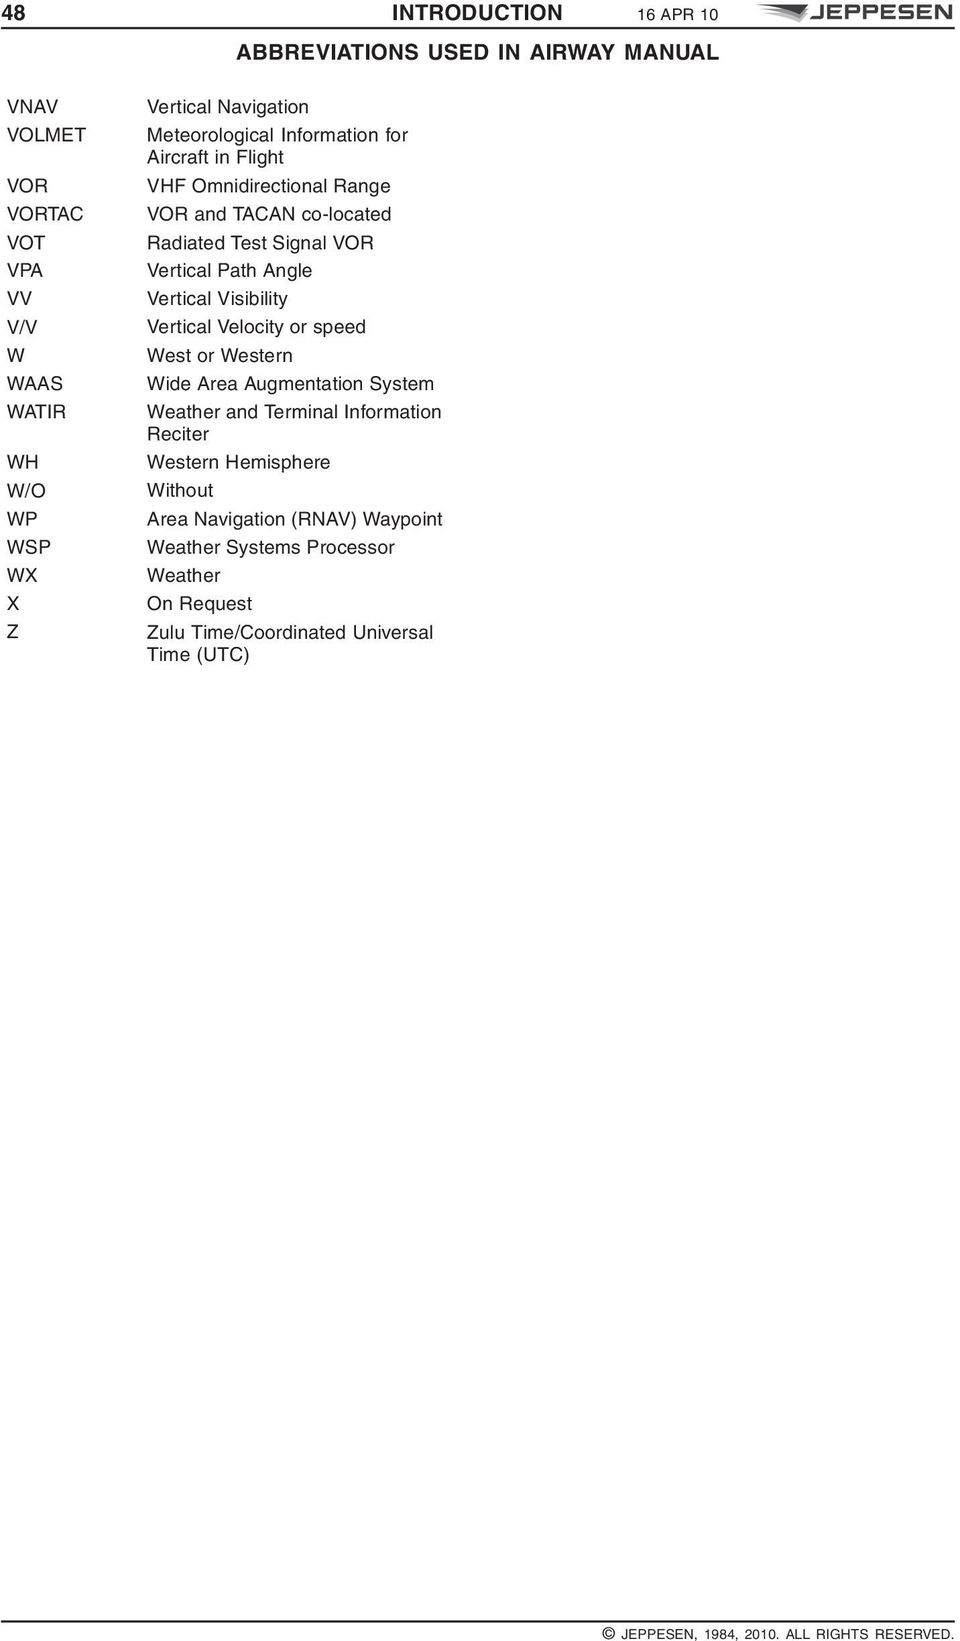 Jeppesen airway manual 2013 india jeppesen jdm mobile array definitions abbreviations used in airway manual pdf rh docplayer net fandeluxe Gallery